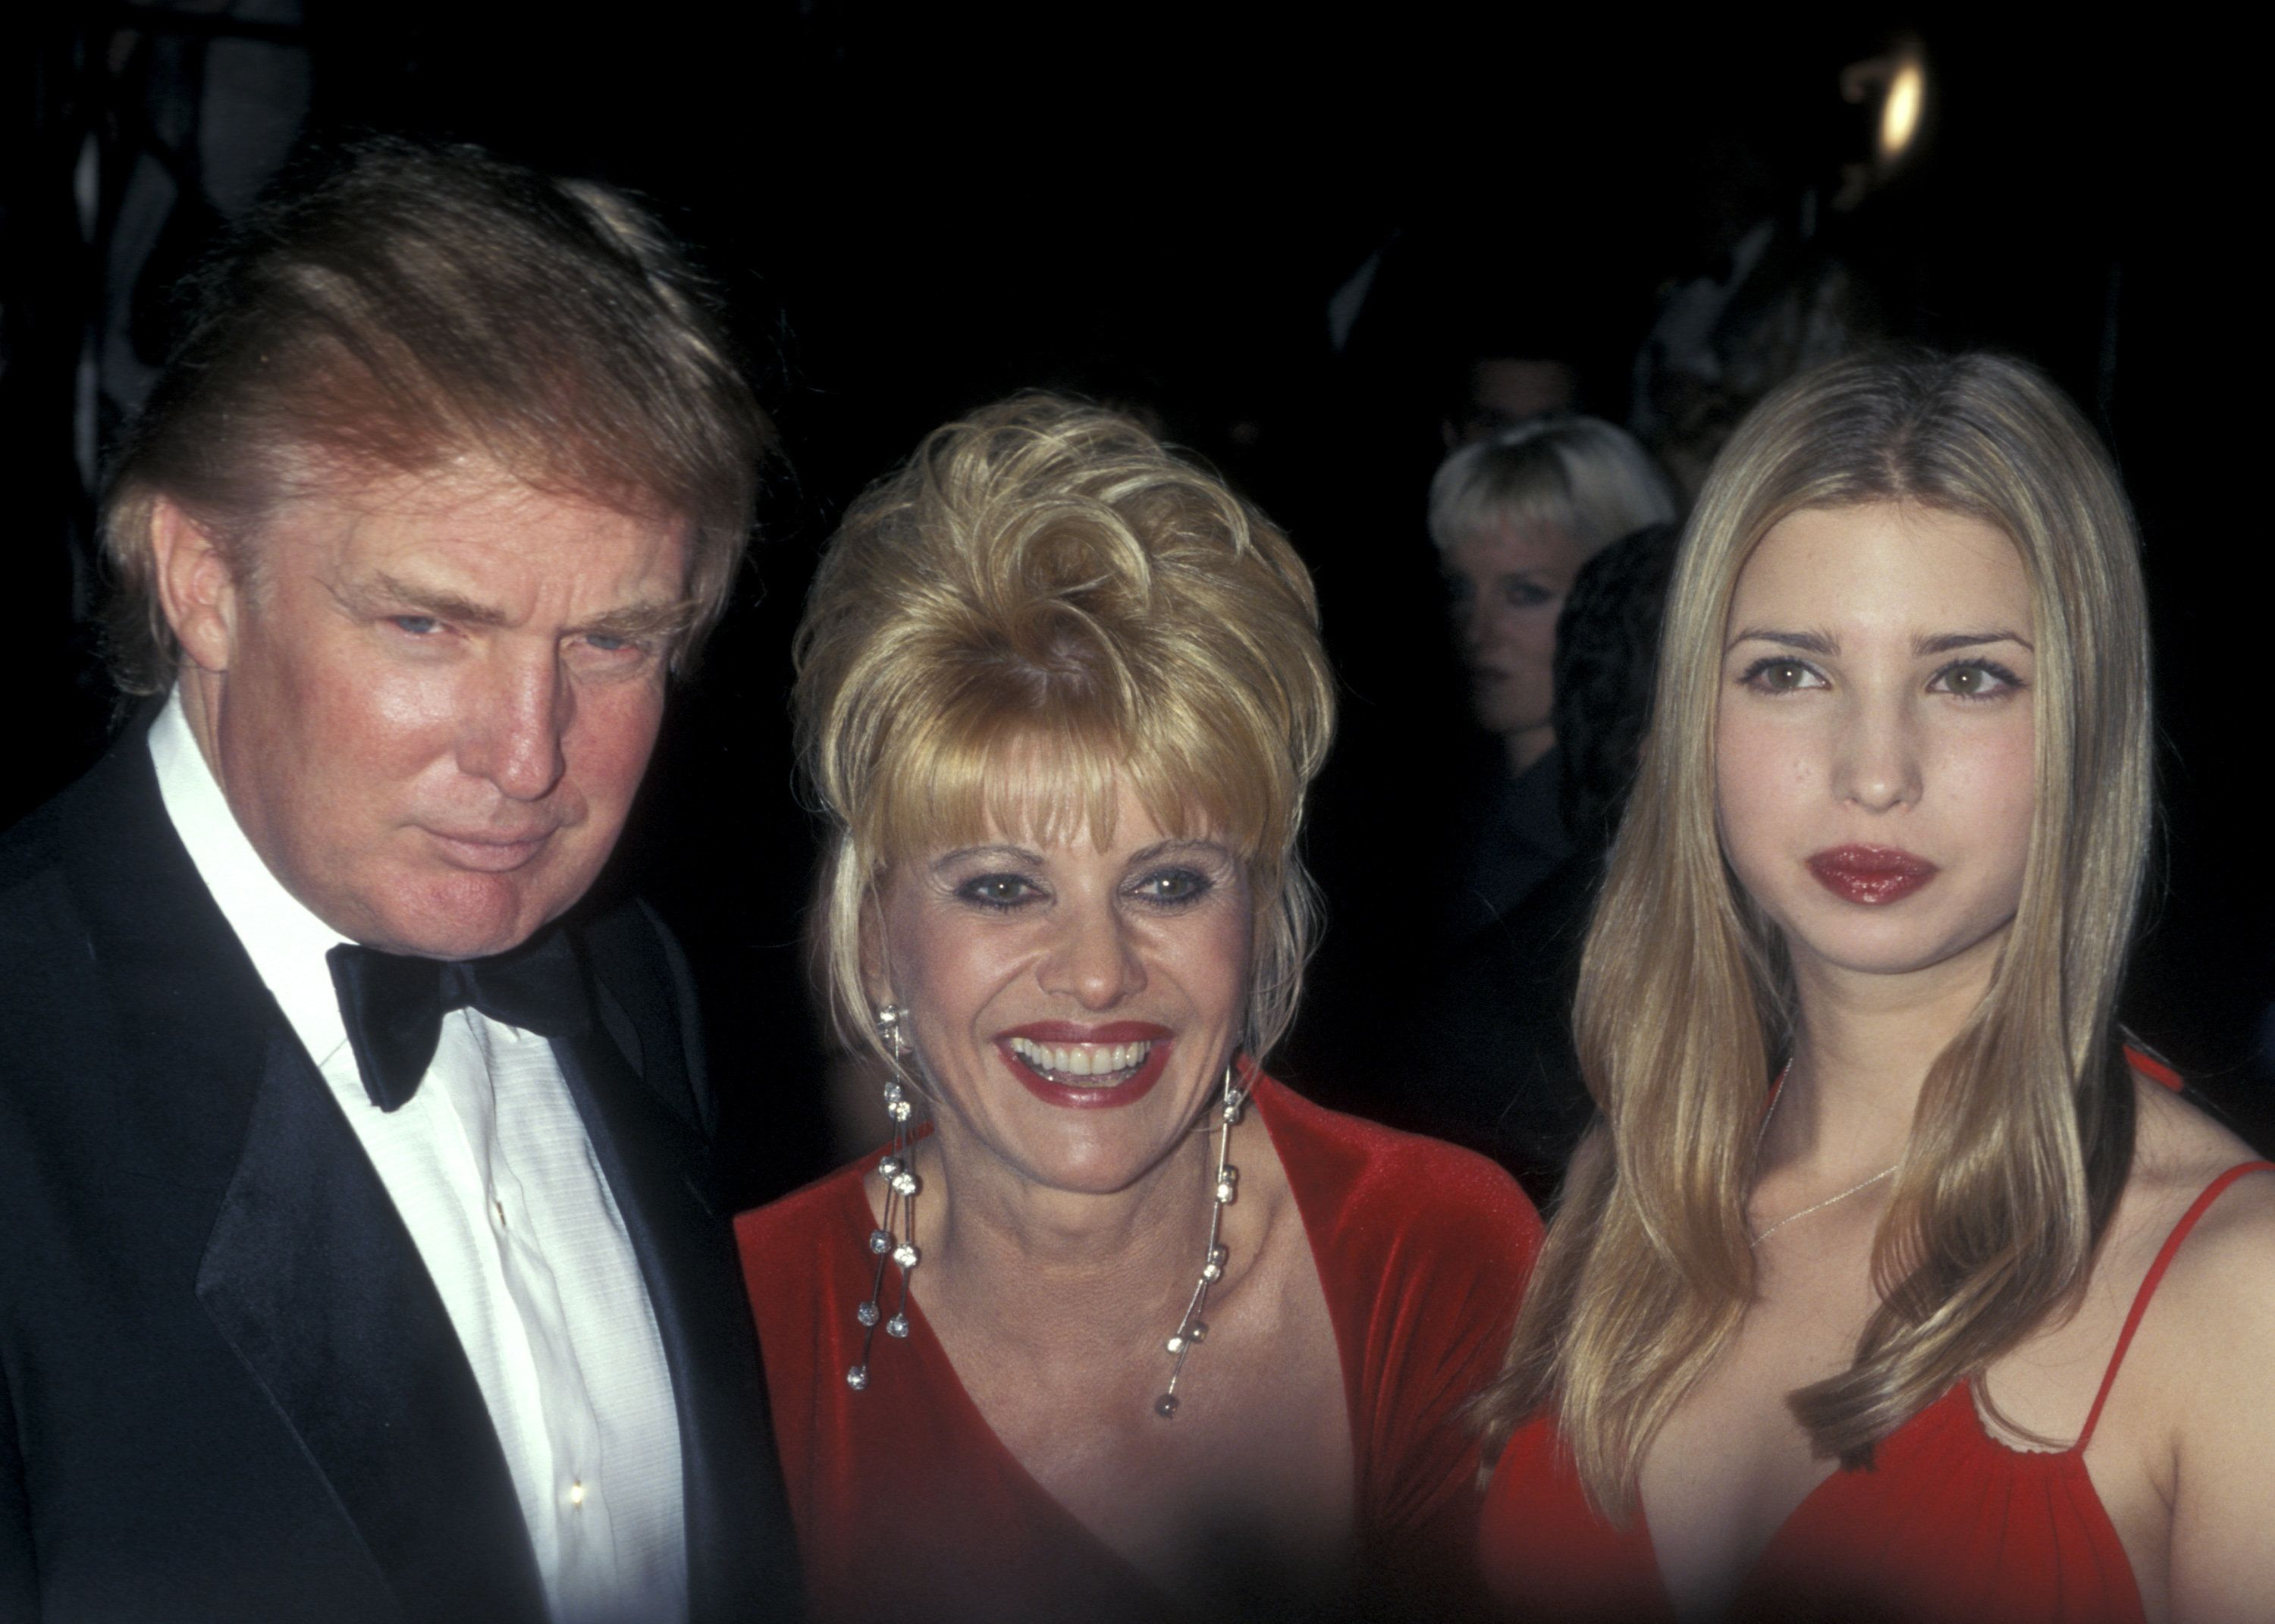 Donald Trump, Ivana Trump and daughter Ivanka years after the divorce.